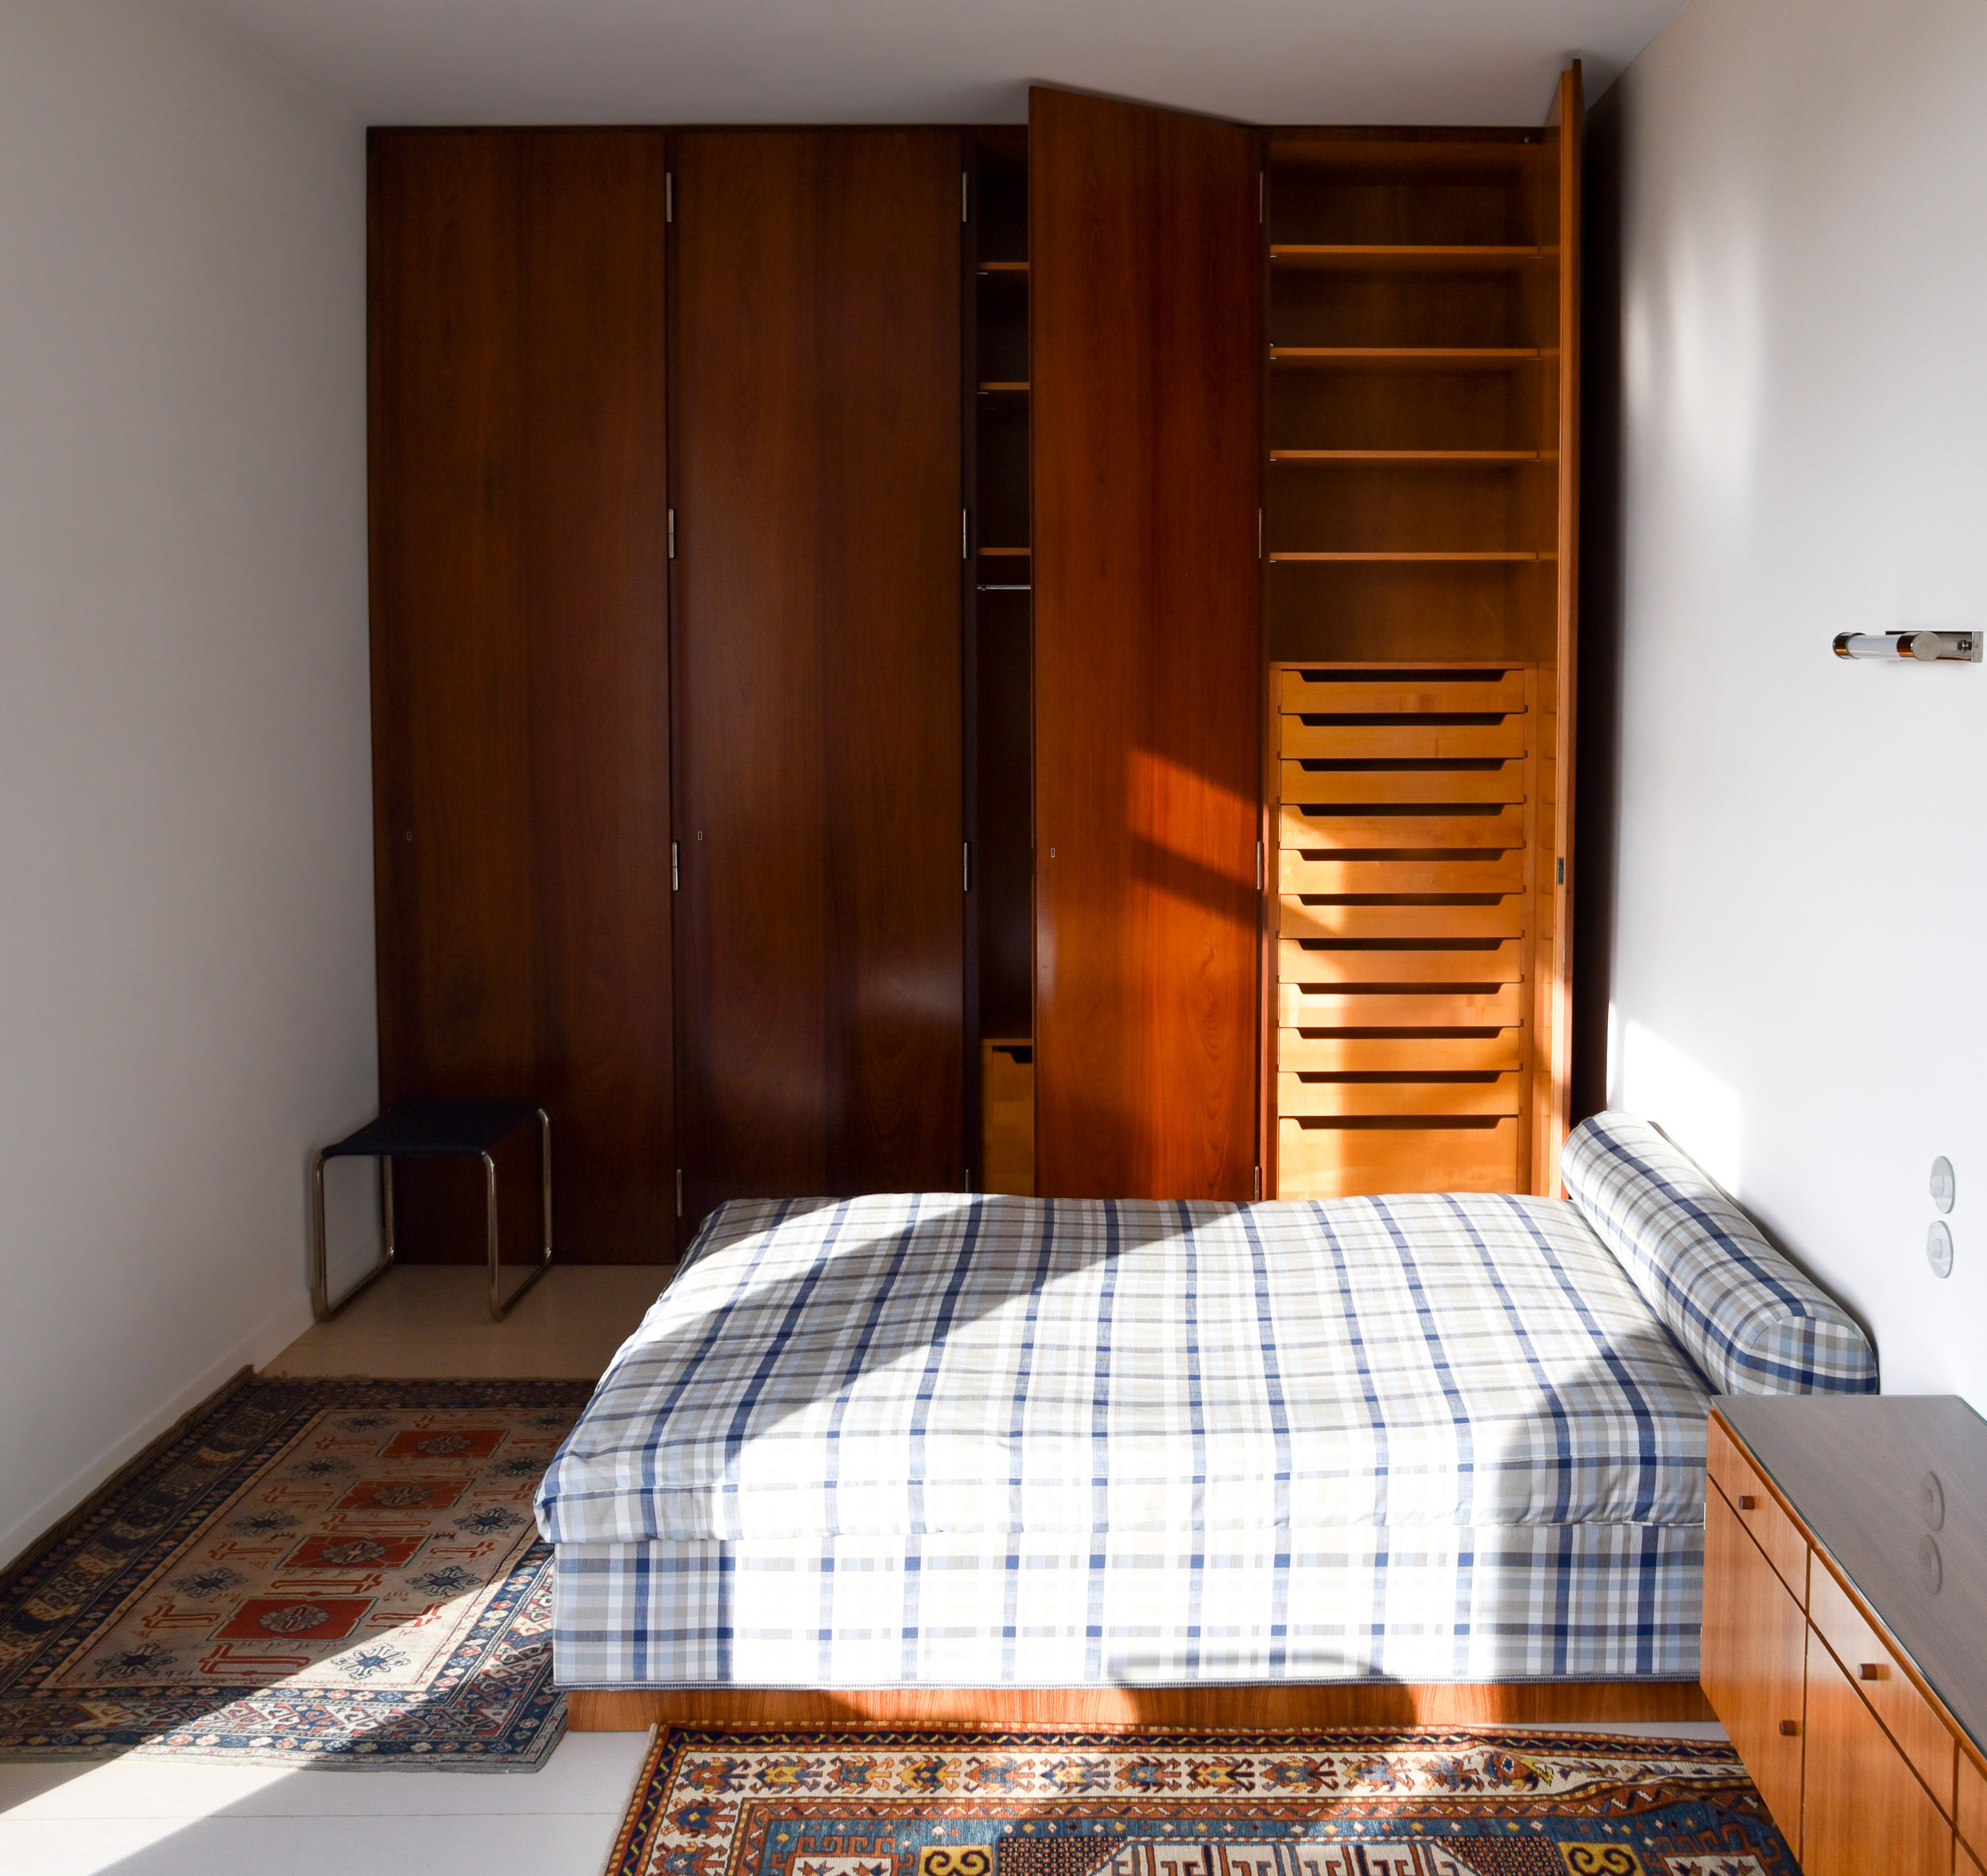 fritz tugendhat's bedroom